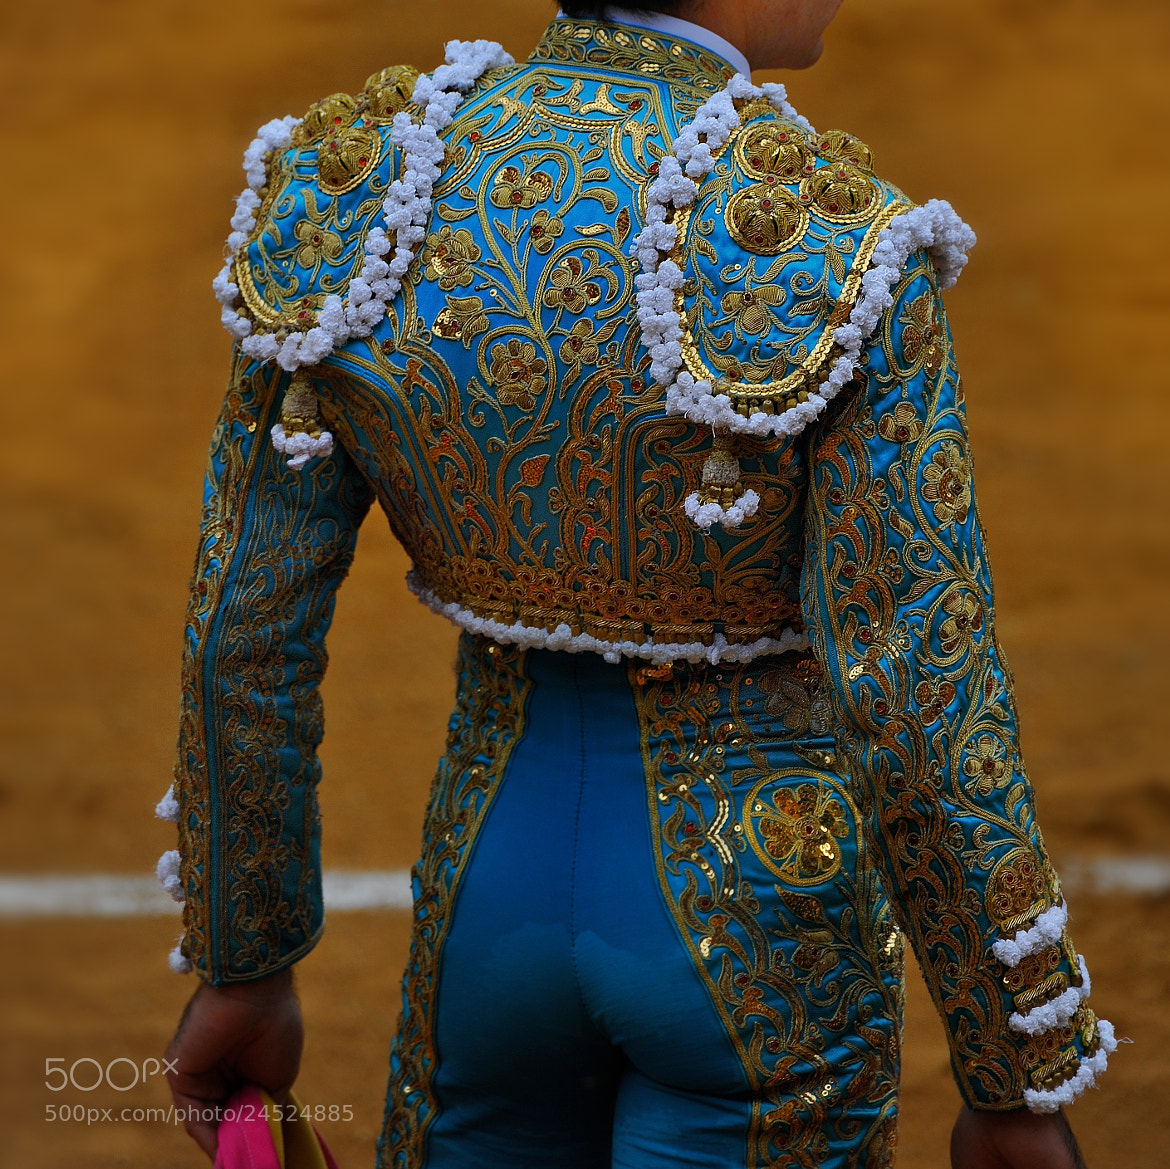 Photograph Oro y azul by Guib_Did Didier on 500px